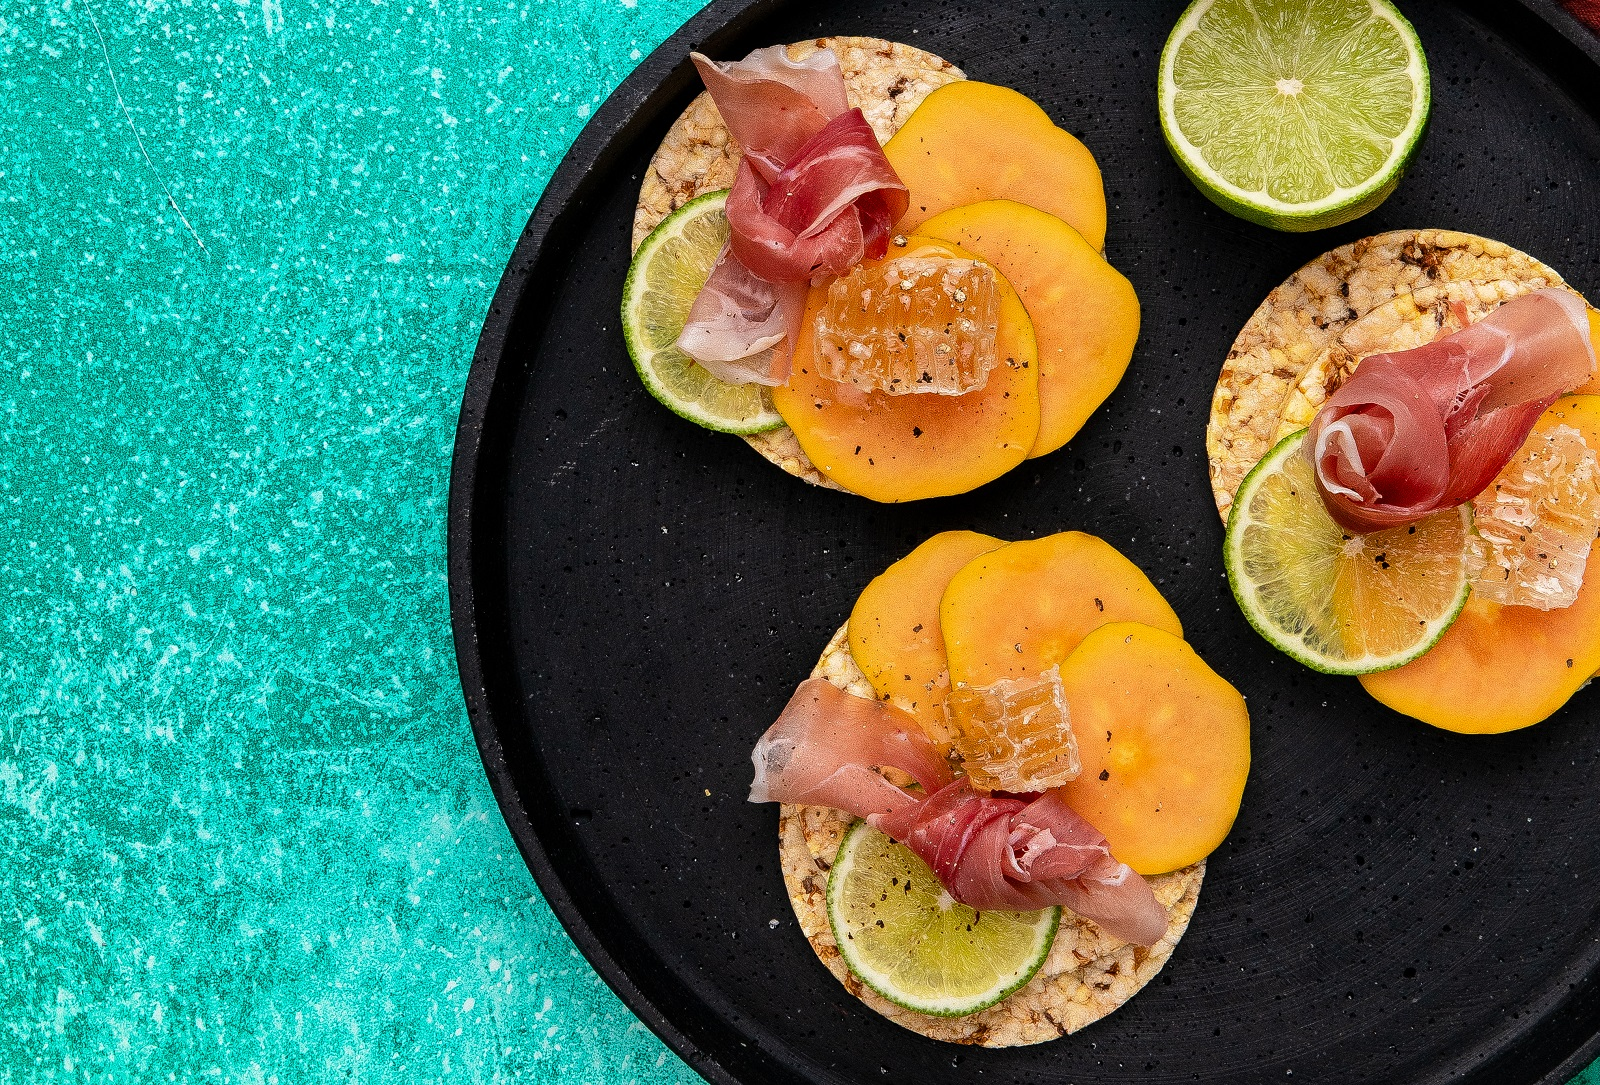 Papaya, Prosciutto, Honey & Lime on Corn Thins slices